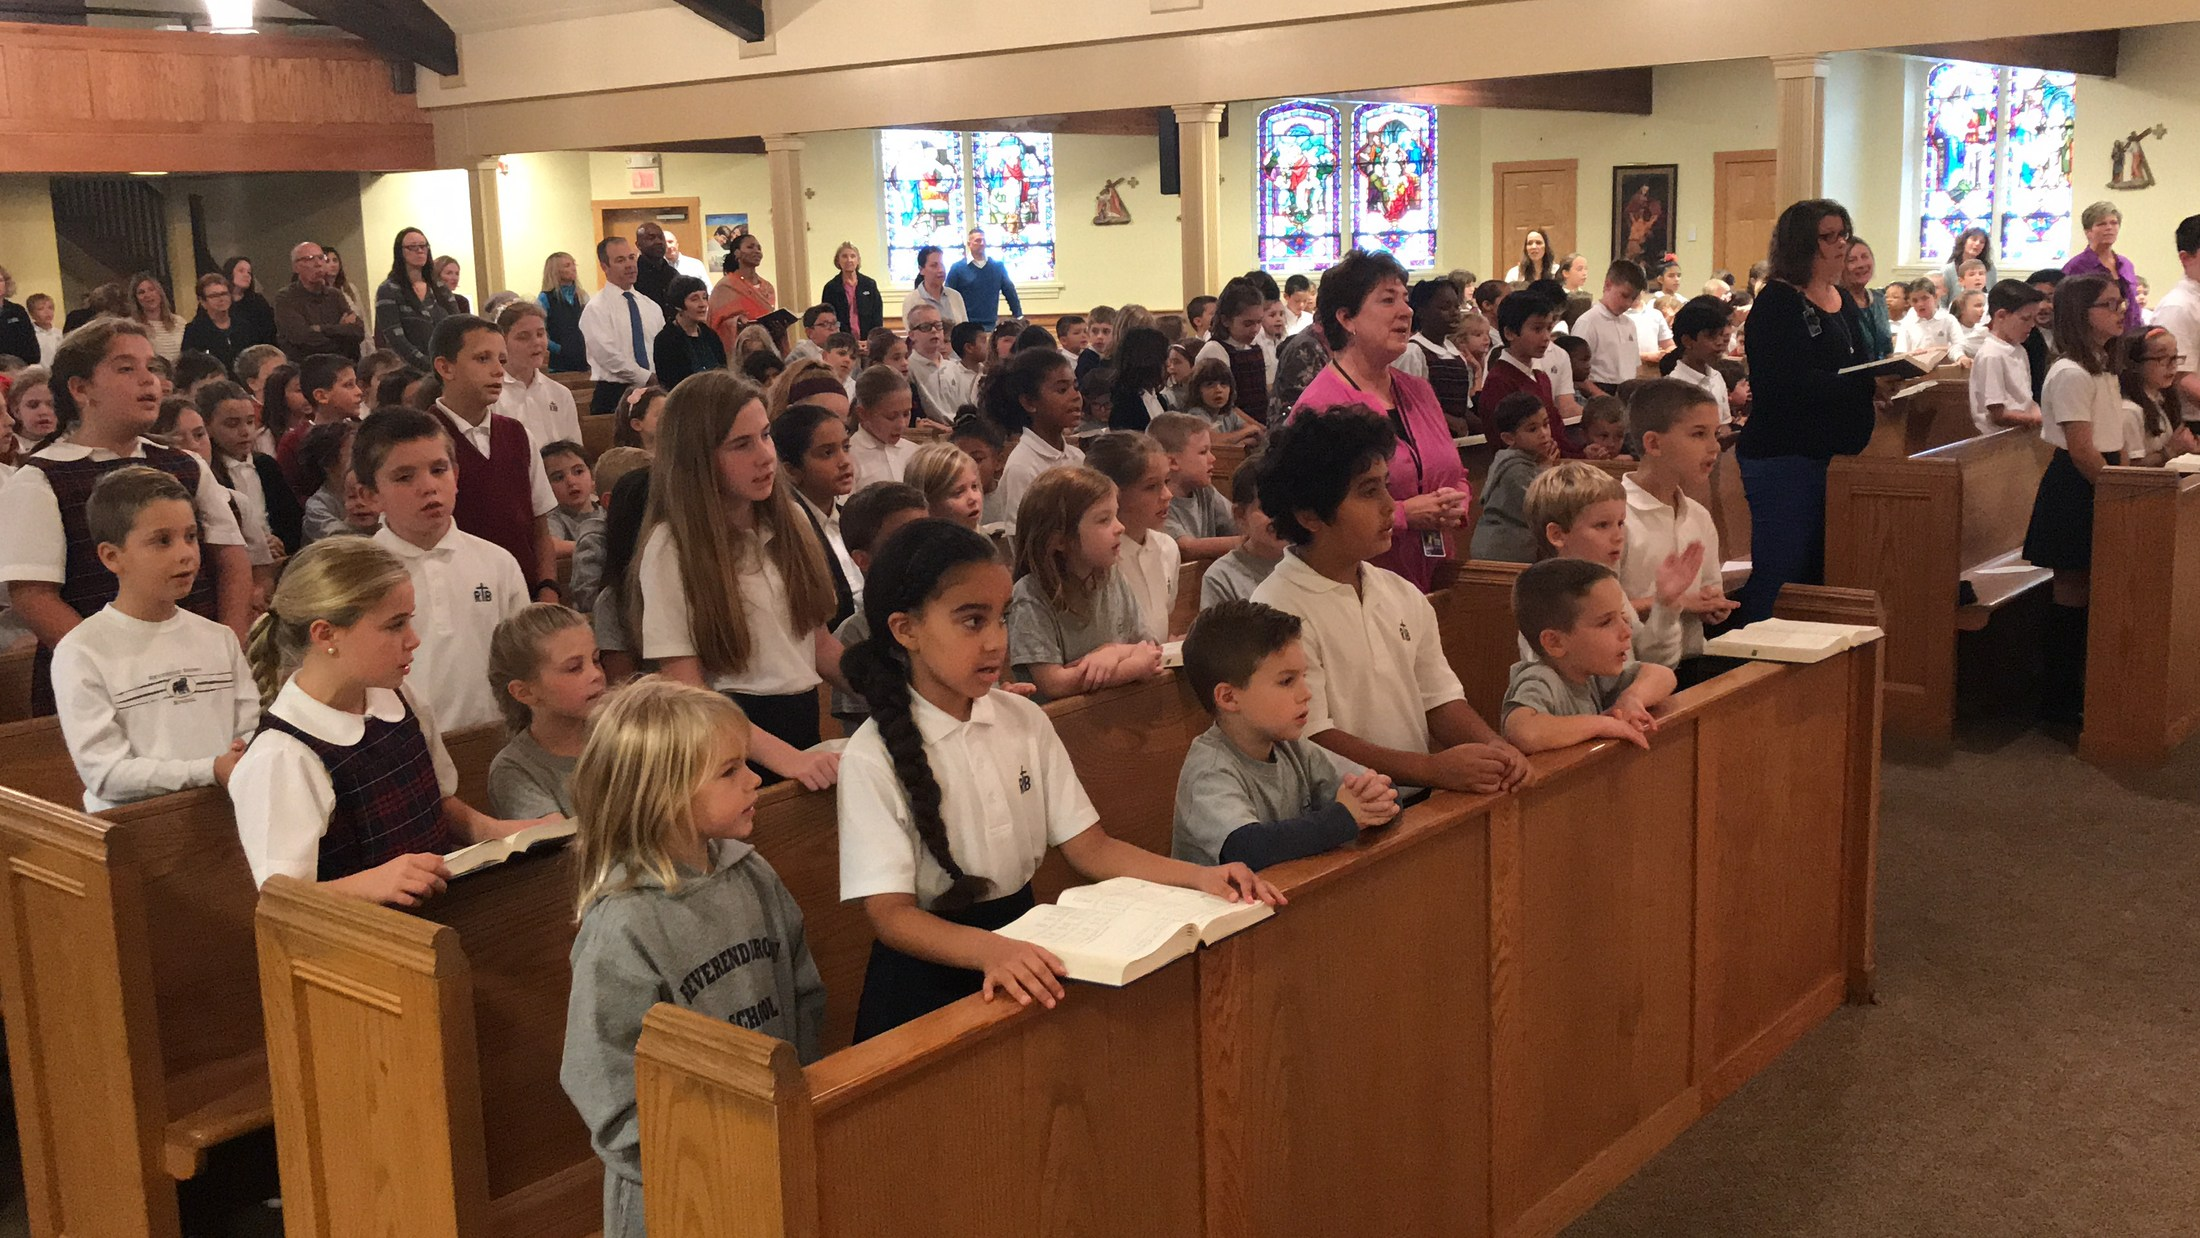 Students pray during mass